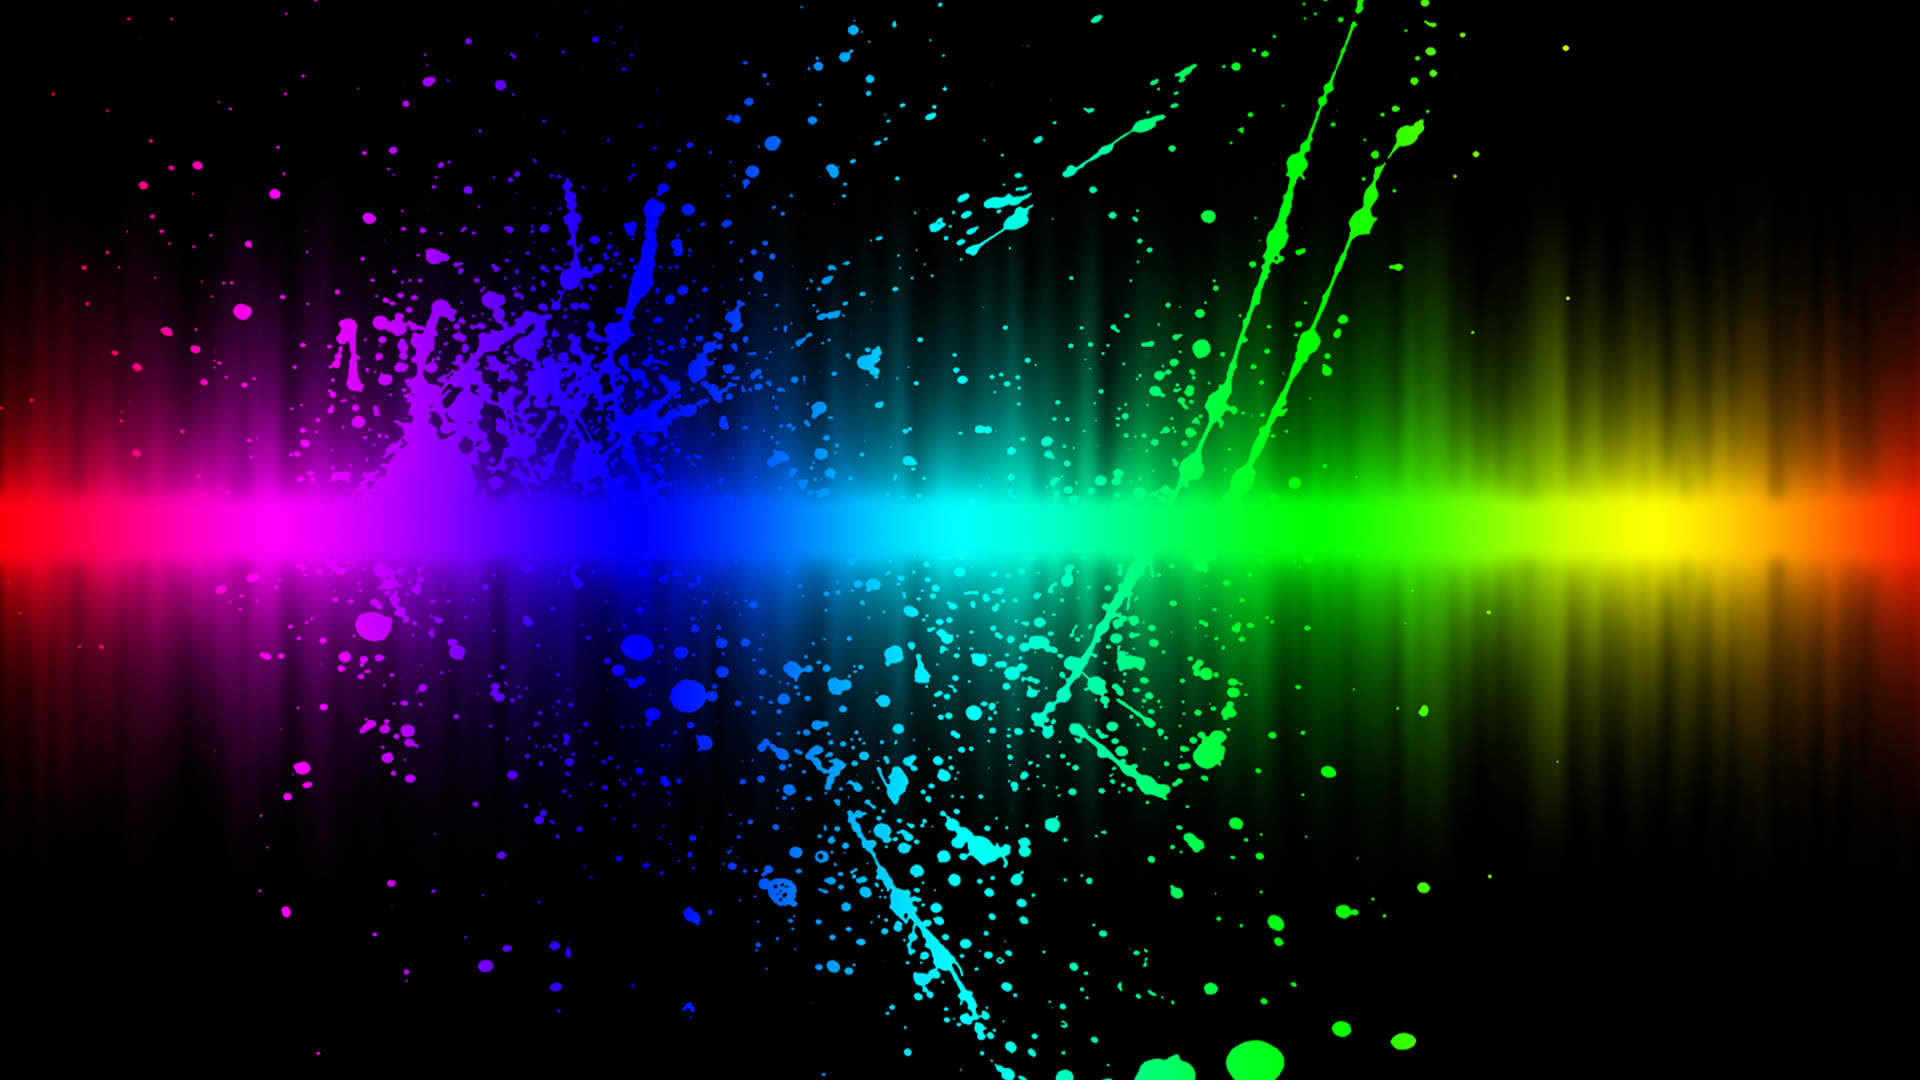 1920x1080 772933 Colorful Abstract Wallpaper